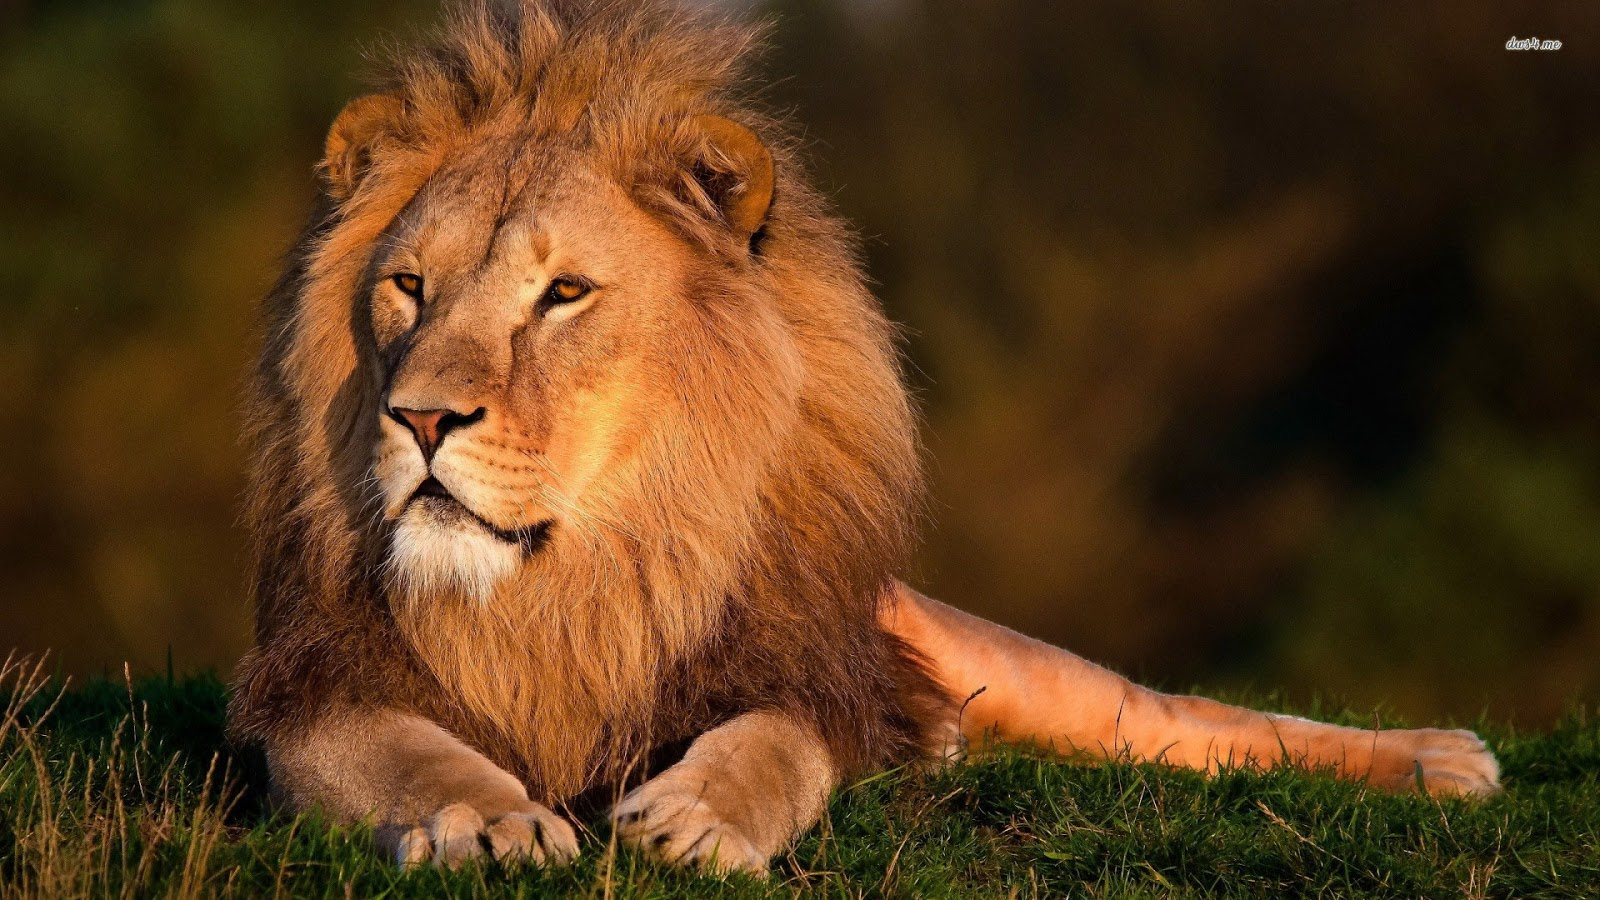 Lions Wallpapers Lion Hd Wallpapers Lion Attack Hd - Desktop Wallpaper Lion Quotes , HD Wallpaper & Backgrounds